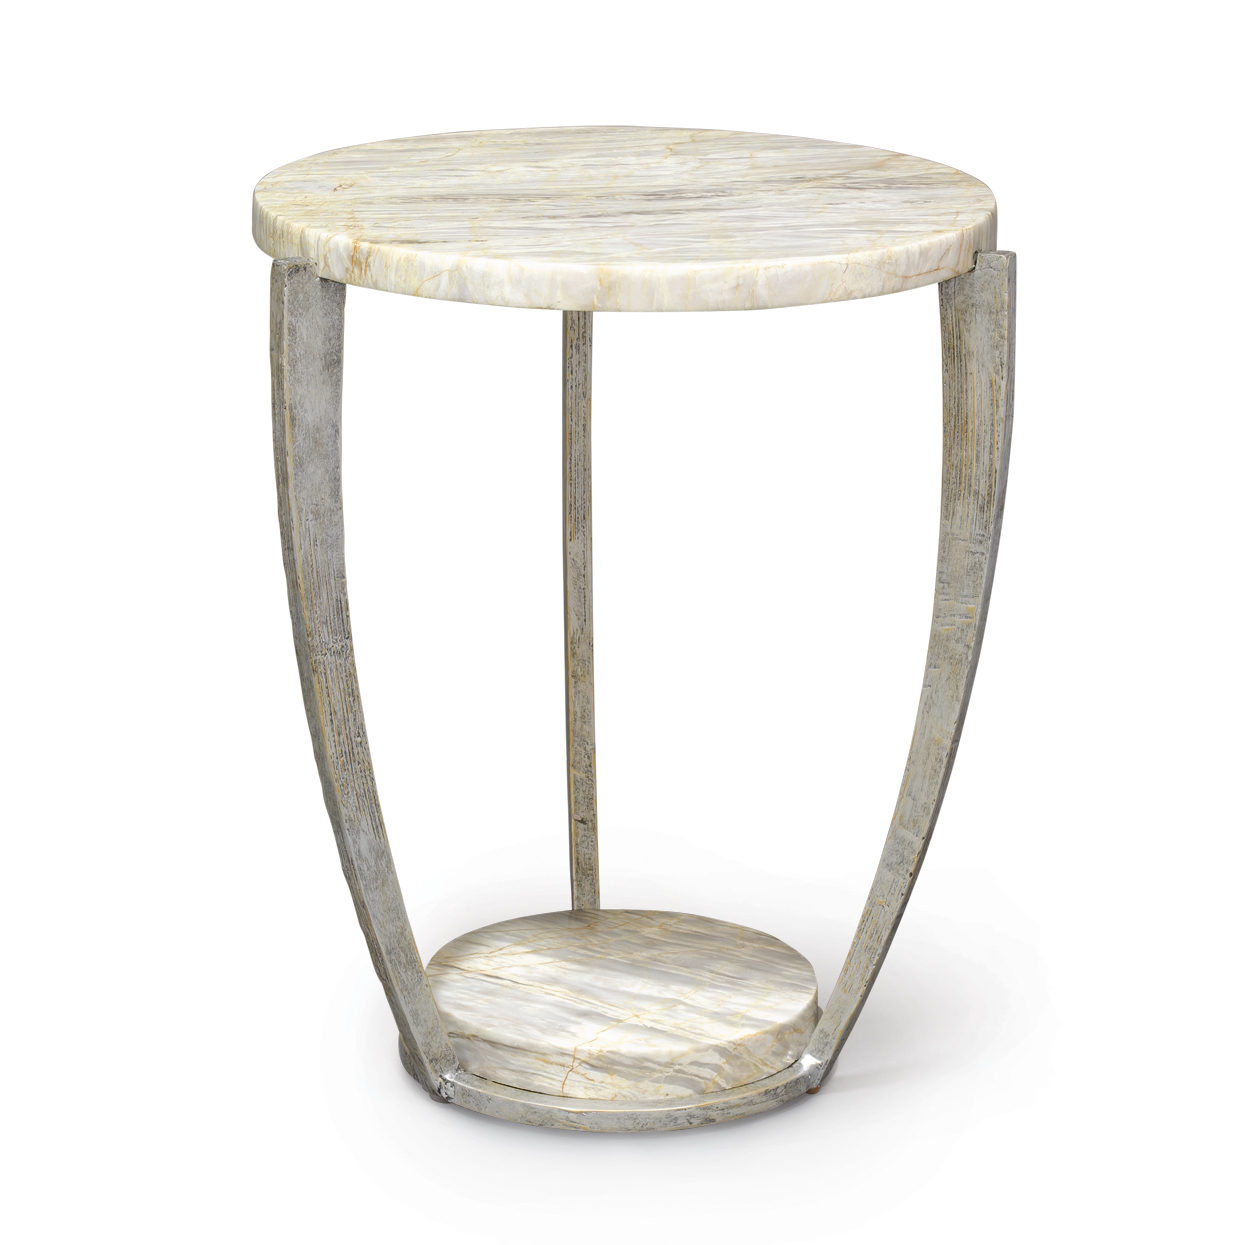 threshold metal target round killian accent faux lamp bistro small top wood marble antique and table set black white nero full size bathroom vanity side unfinished tops high pool